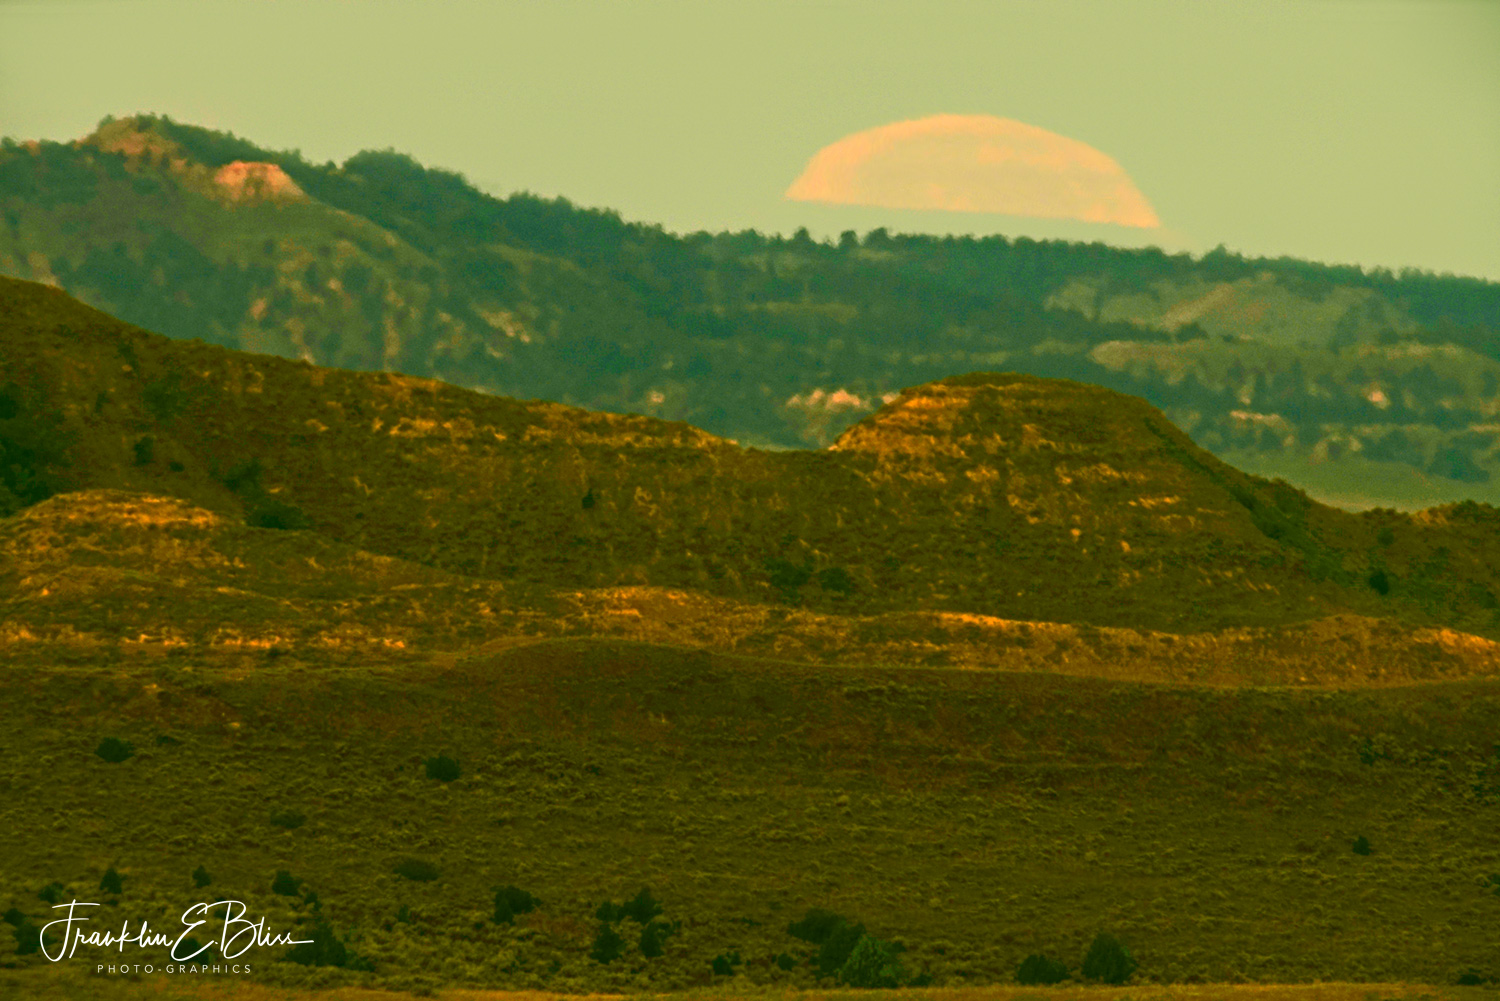 The Harvest Moon Setting Just After Sunrise